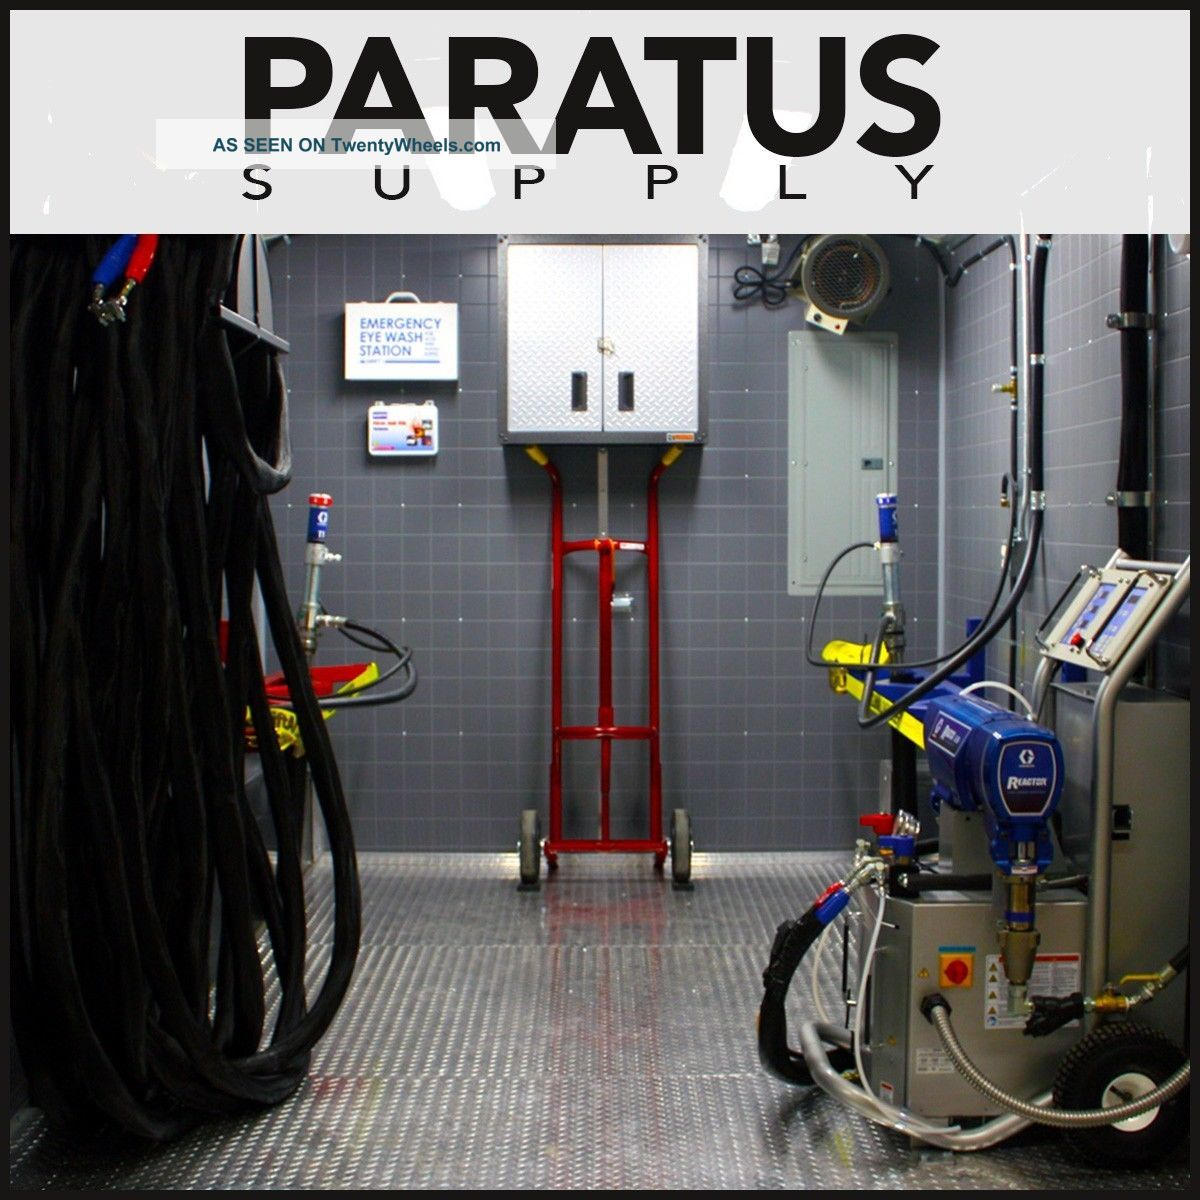 Spray Foam Rig - The Xtr2 Spray Foam Rig By Paratus - 20 ' Turn - Key 3 Set Rig Insulation photo